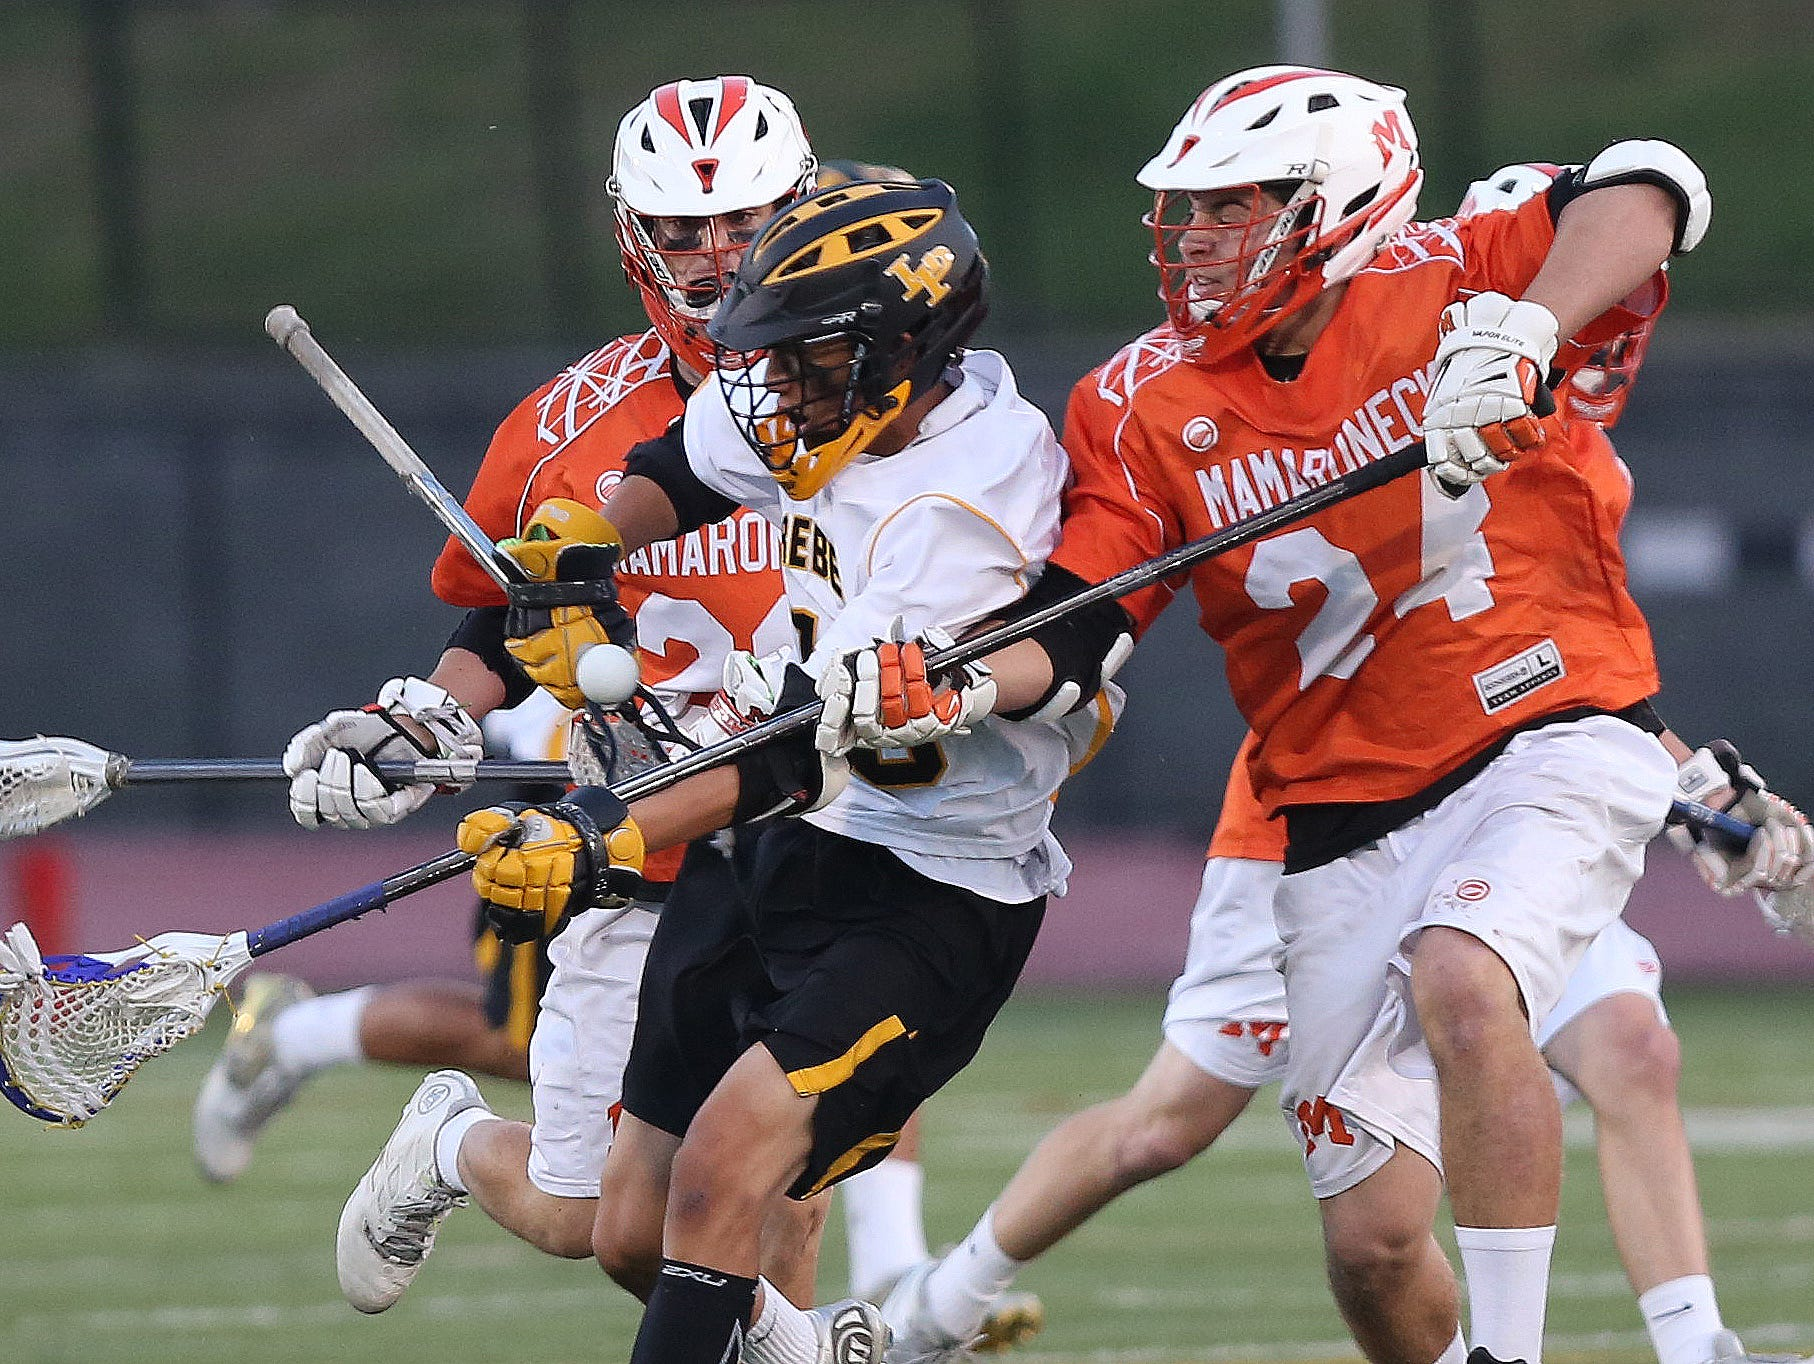 Lakeland/Panas' Brian Toy (18) has the ball knocked away by Mamaroneck's Max Plonsner (24) during the Section 1 championship game at White Plains High School May 25, 2016.